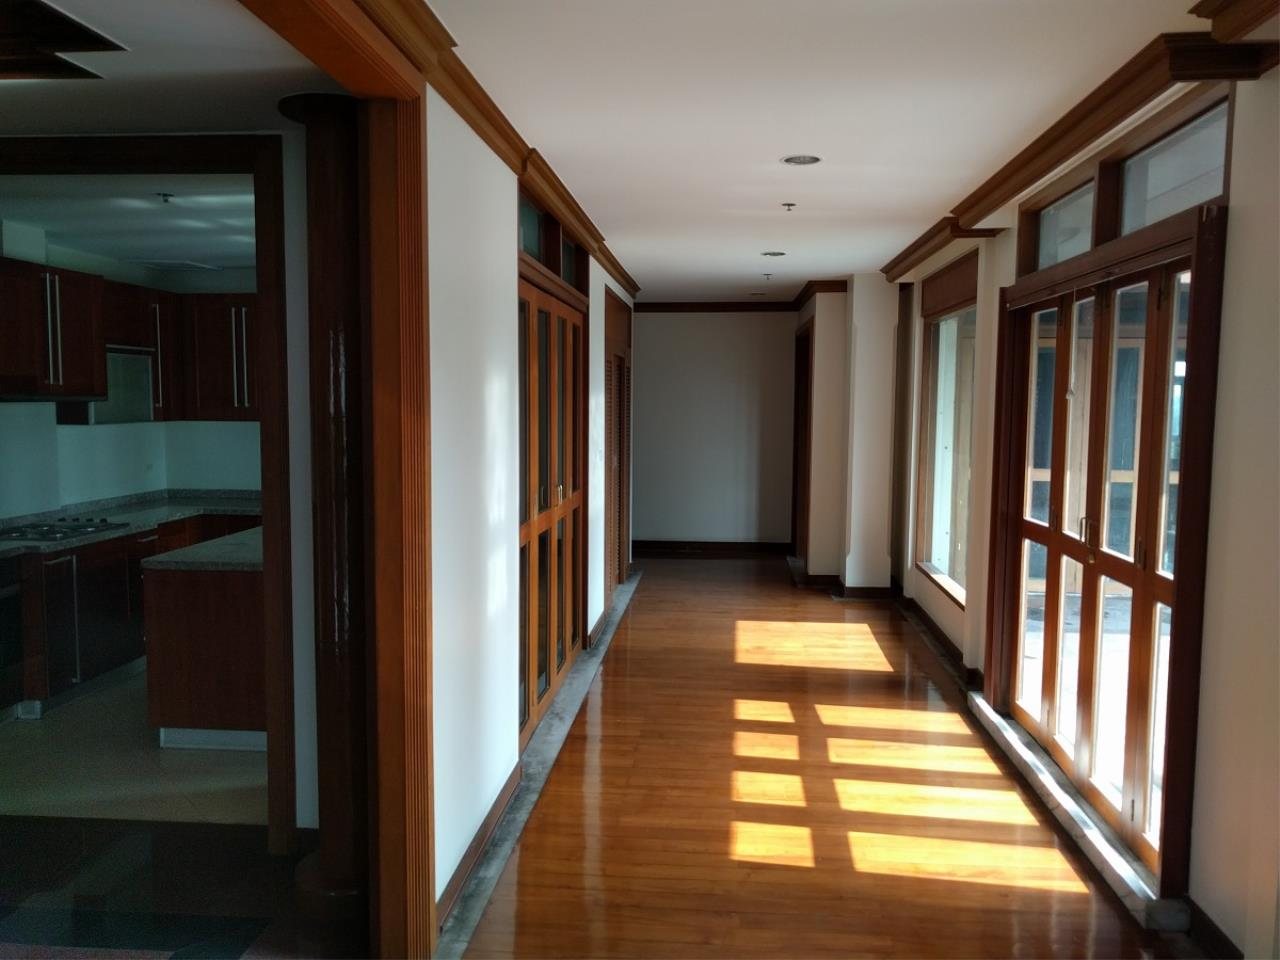 RE/MAX CondoDee Agency's Thai Elegance Luxury Condominium - Entire Building for Sale 20